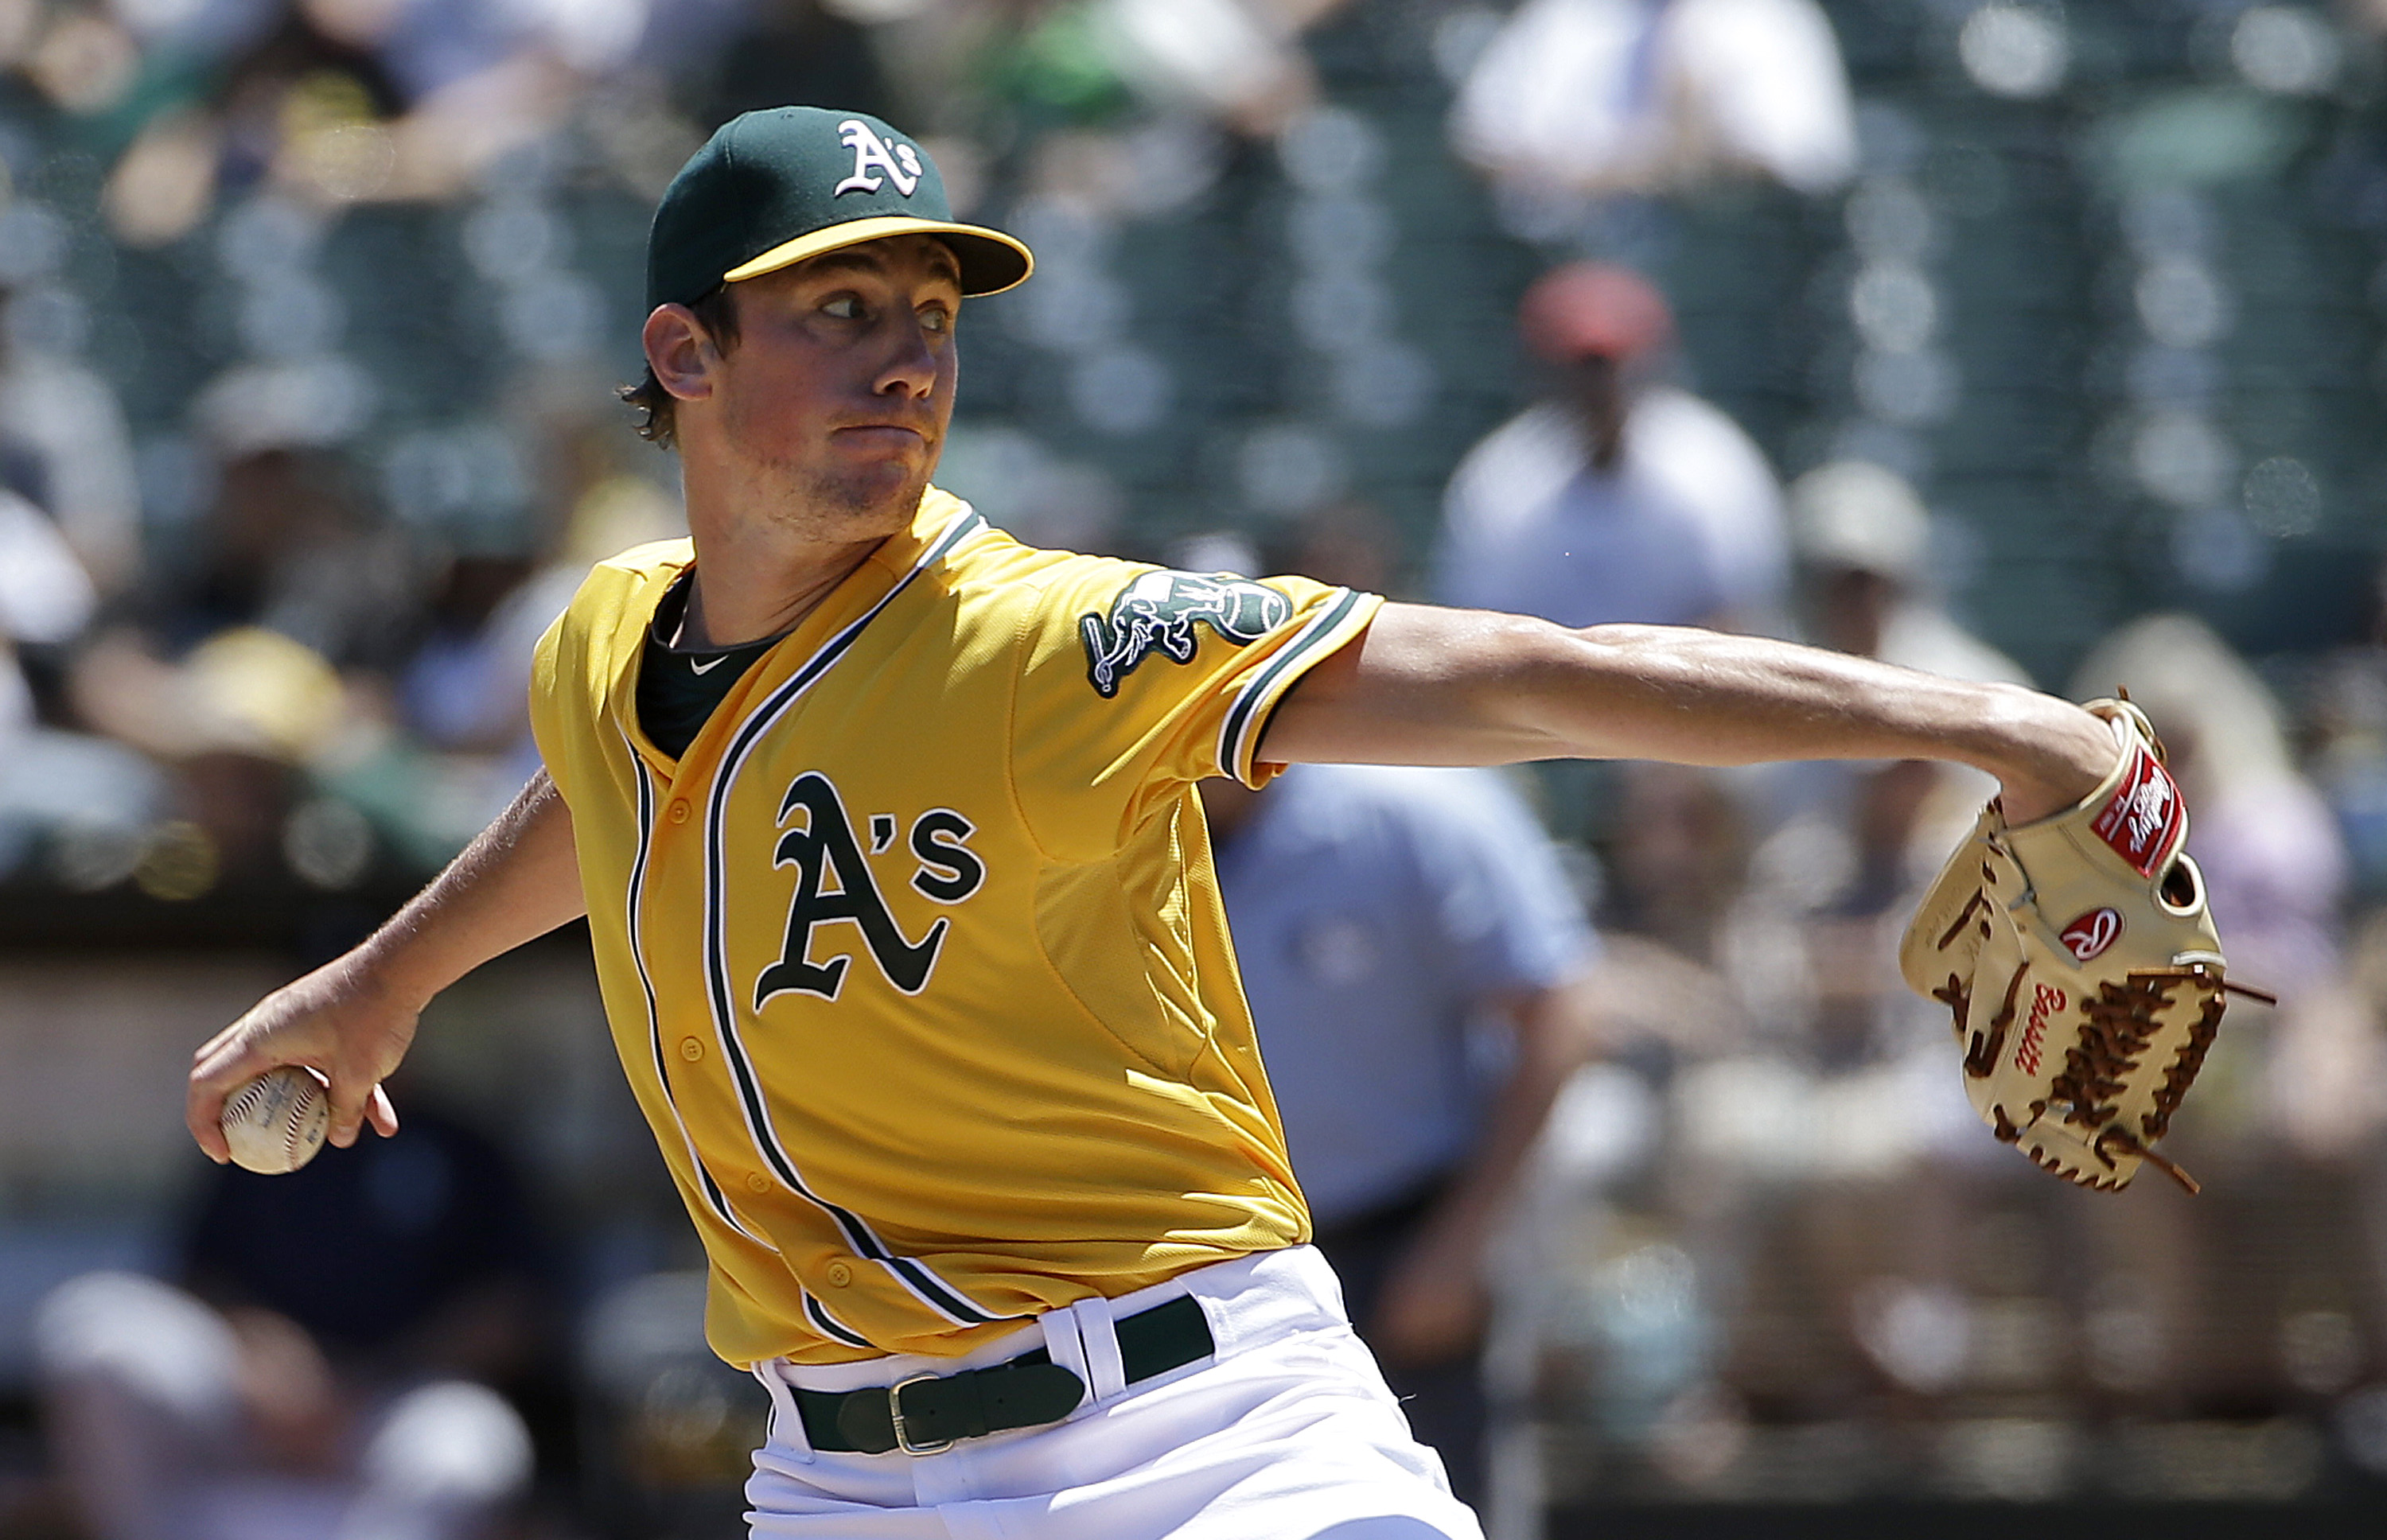 Oakland Athletics pitcher Chris Bassitt throws against the Seattle Mariners during the first inning of a baseball game in Oakland, Calif., Sunday, July 5, 2015. (AP Photo/Jeff Chiu)